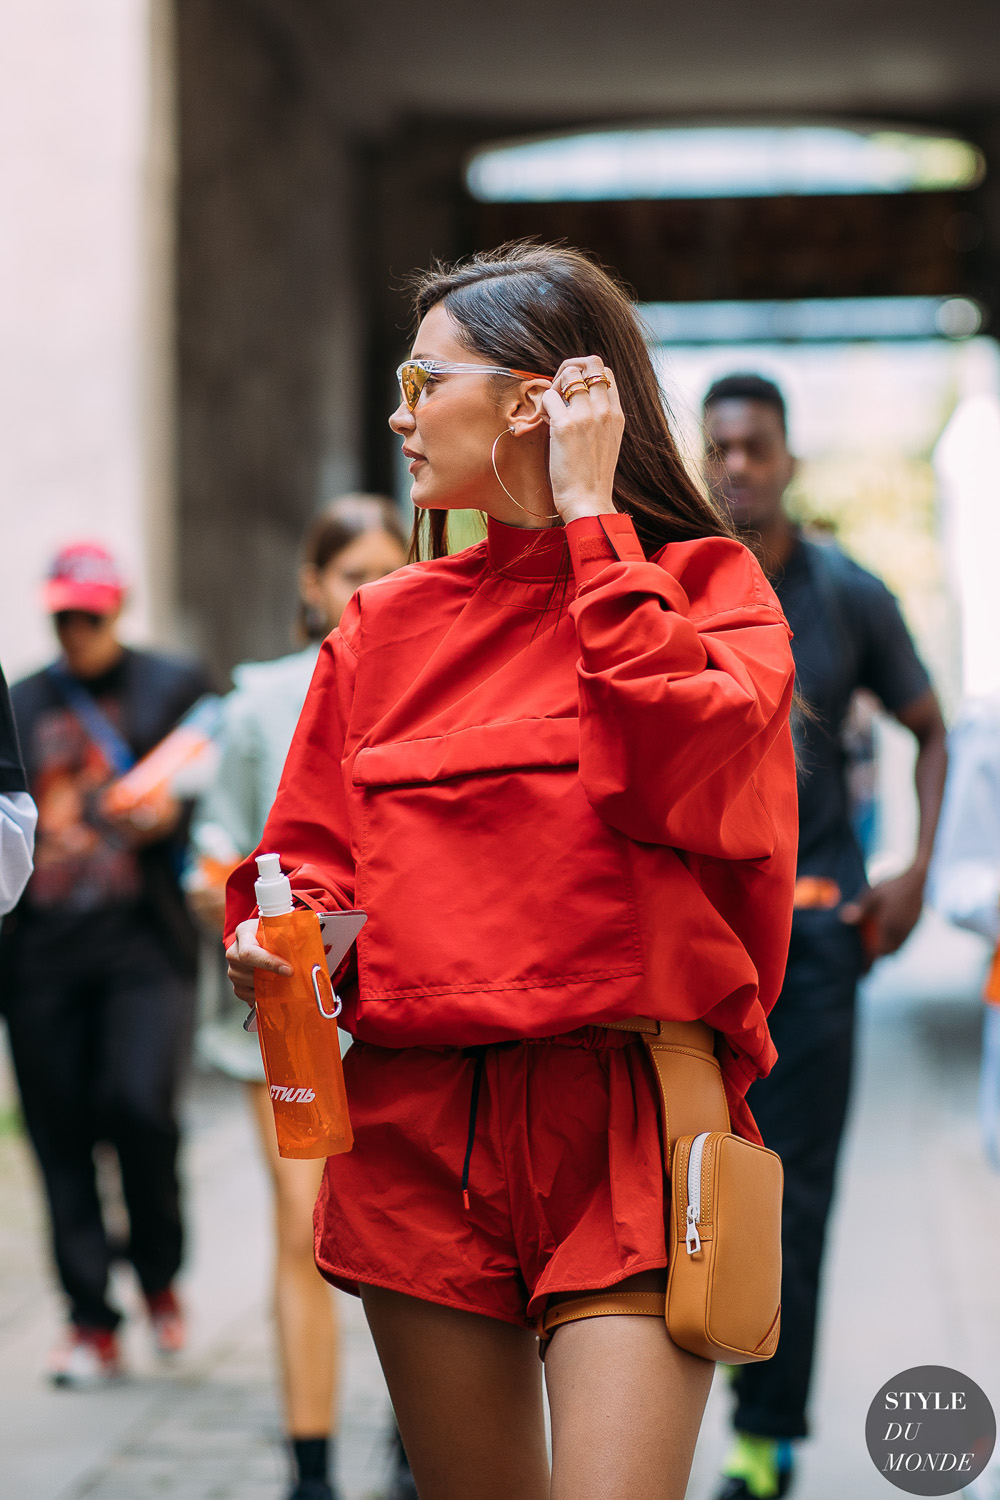 tendencia-athleisure-Bella-Hadid-by-STYLEDUMONDE-Street-Style-Fashion-Photography20180621_48A4344